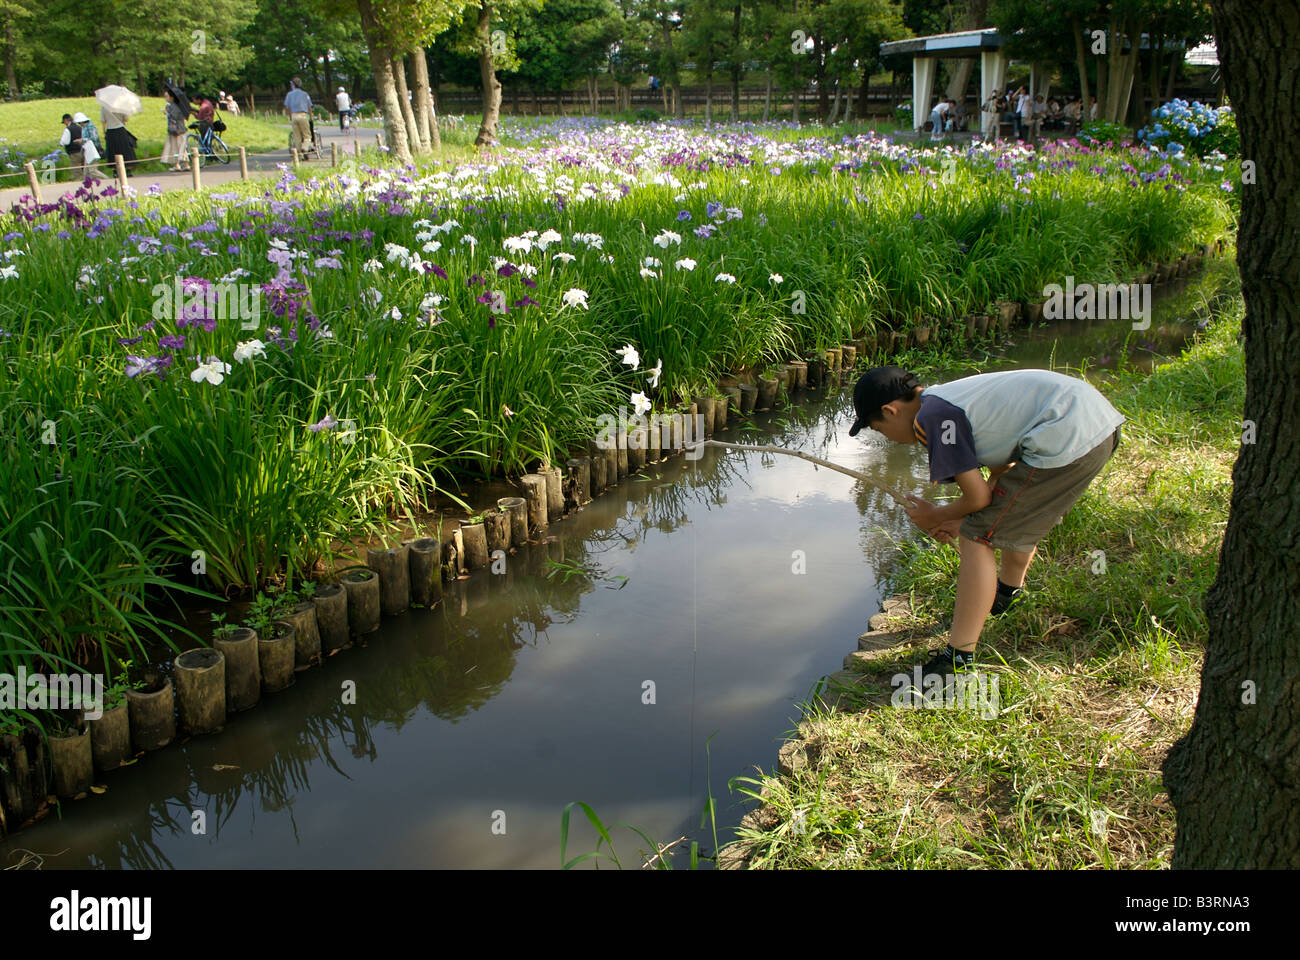 Boy fishing in a small creek tokyo japan stock photo for Small creek fishing